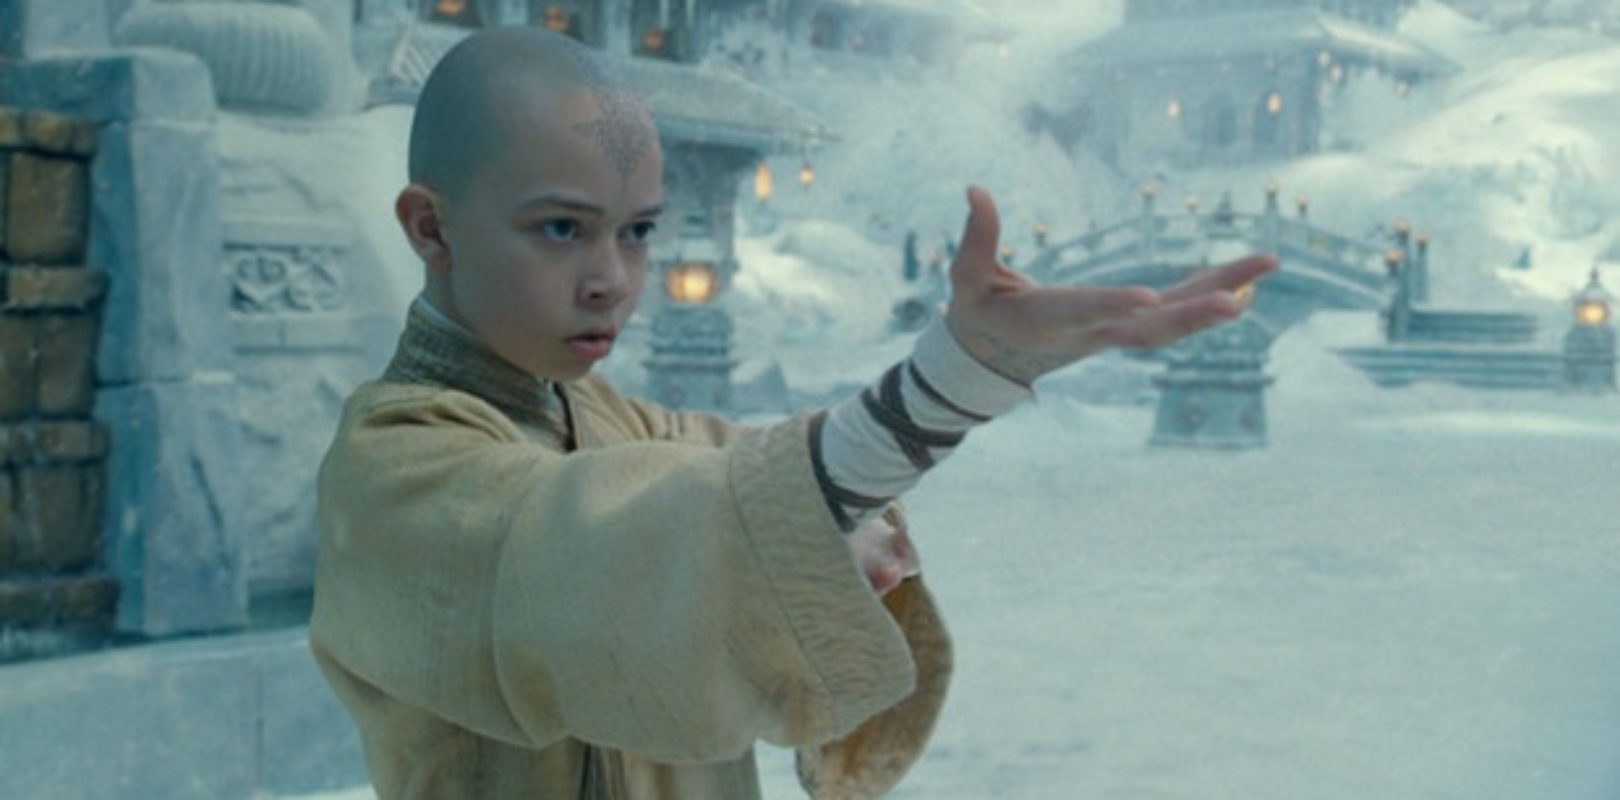 Aang from the live-action Avatar movie